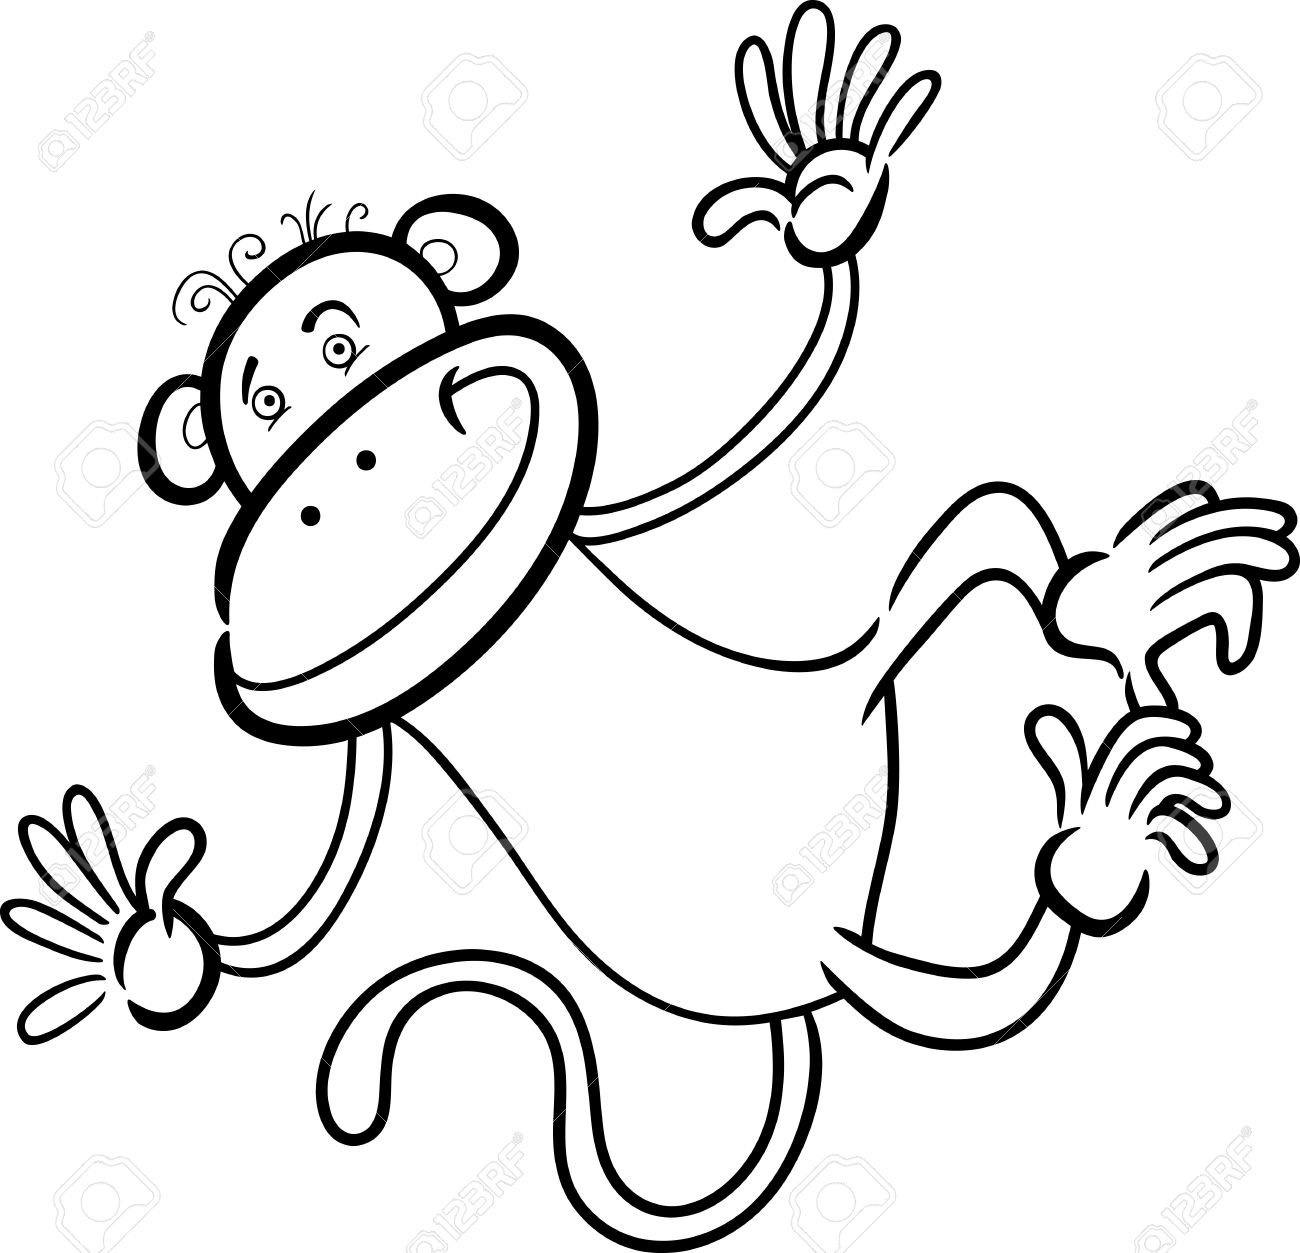 1300x1253 Cartoon Humorous Illustration Of Cute Funny Monkey For Coloring